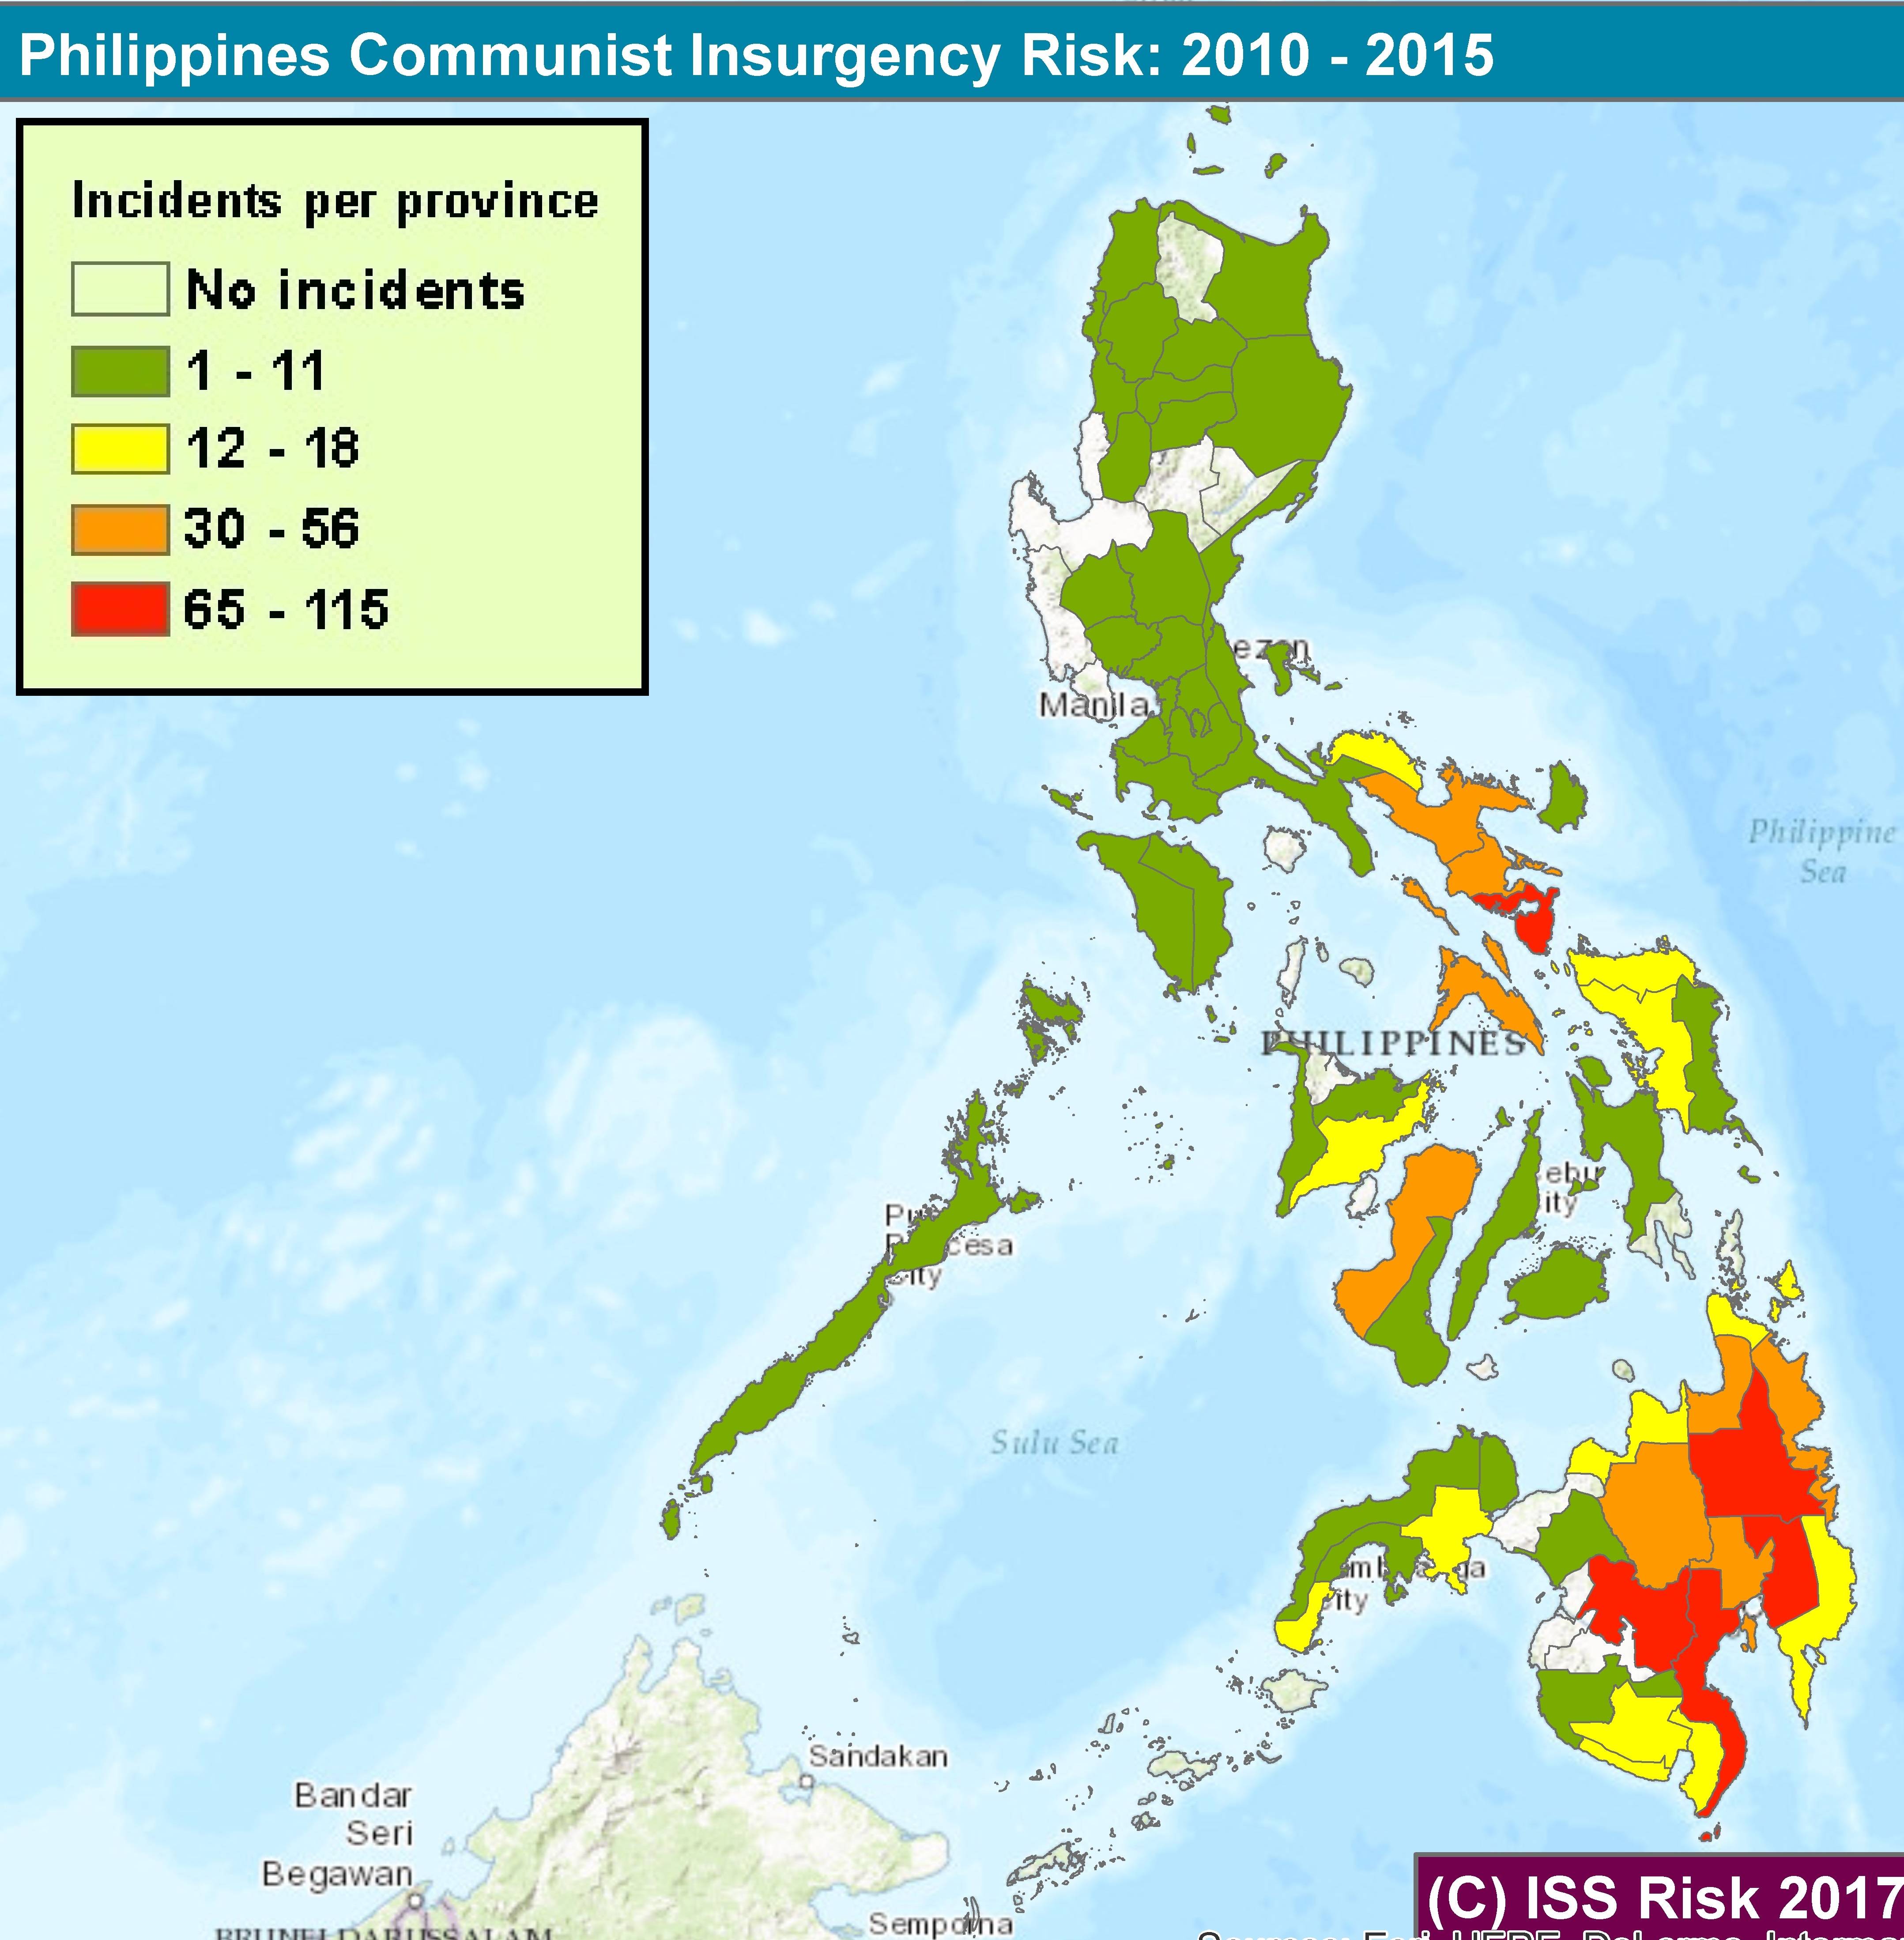 6th of June 2017 Philippines UPDATE on complex militant attack in